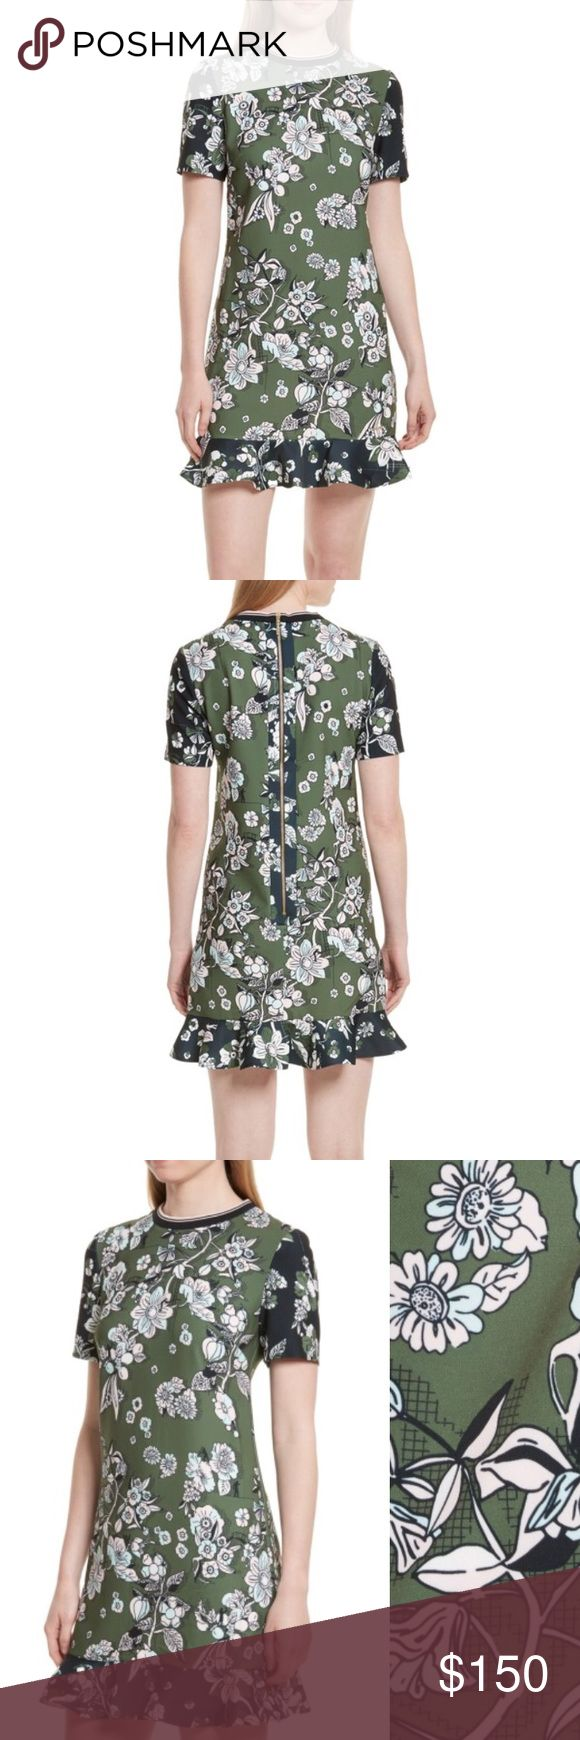 Invert color jpg online - Ted Baker Hoster Floral Print Ruffle Hem Dress